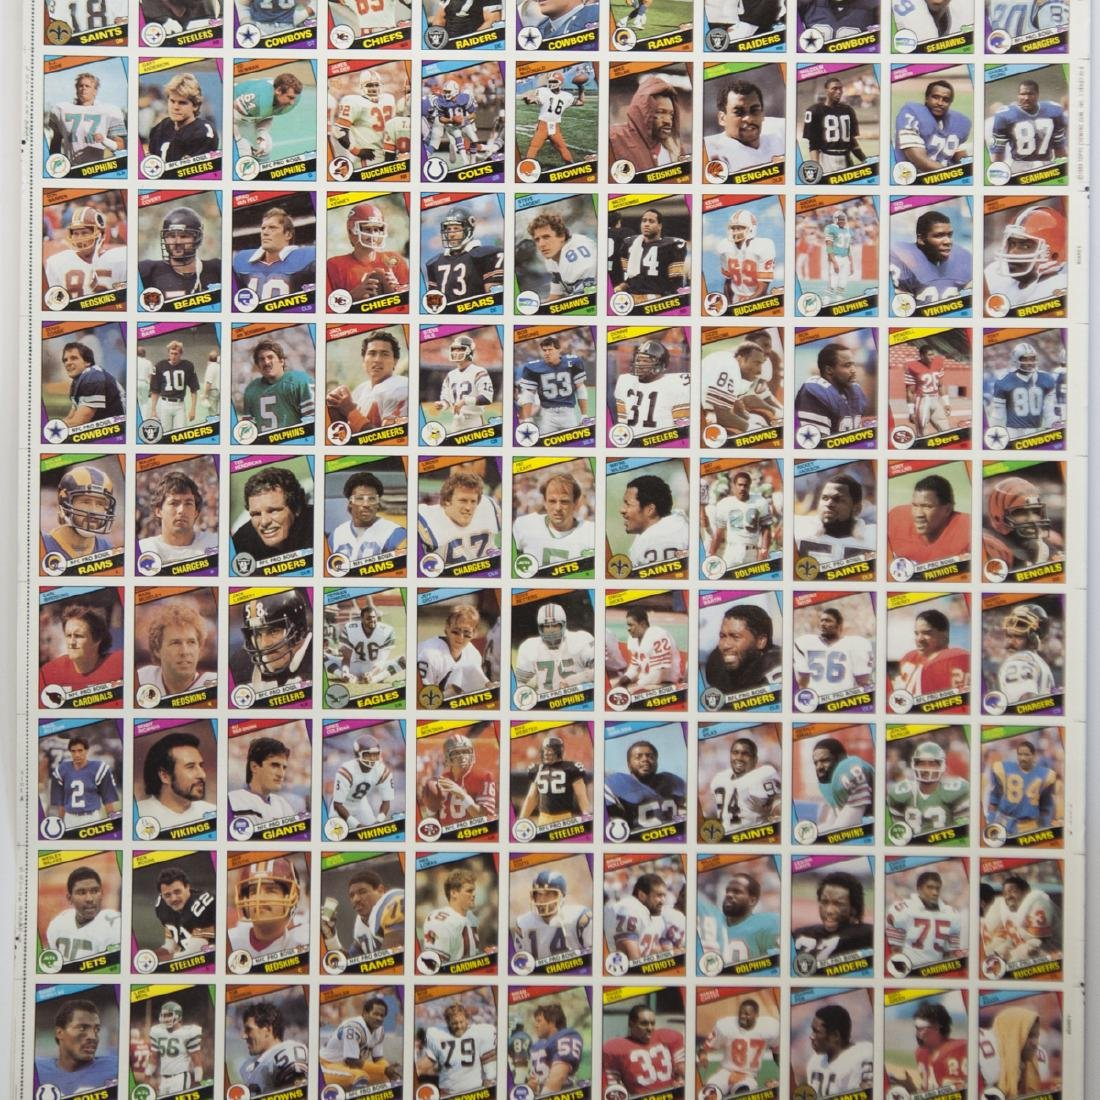 1984 Topps Chewing Gum NFL Card Sheets - 2